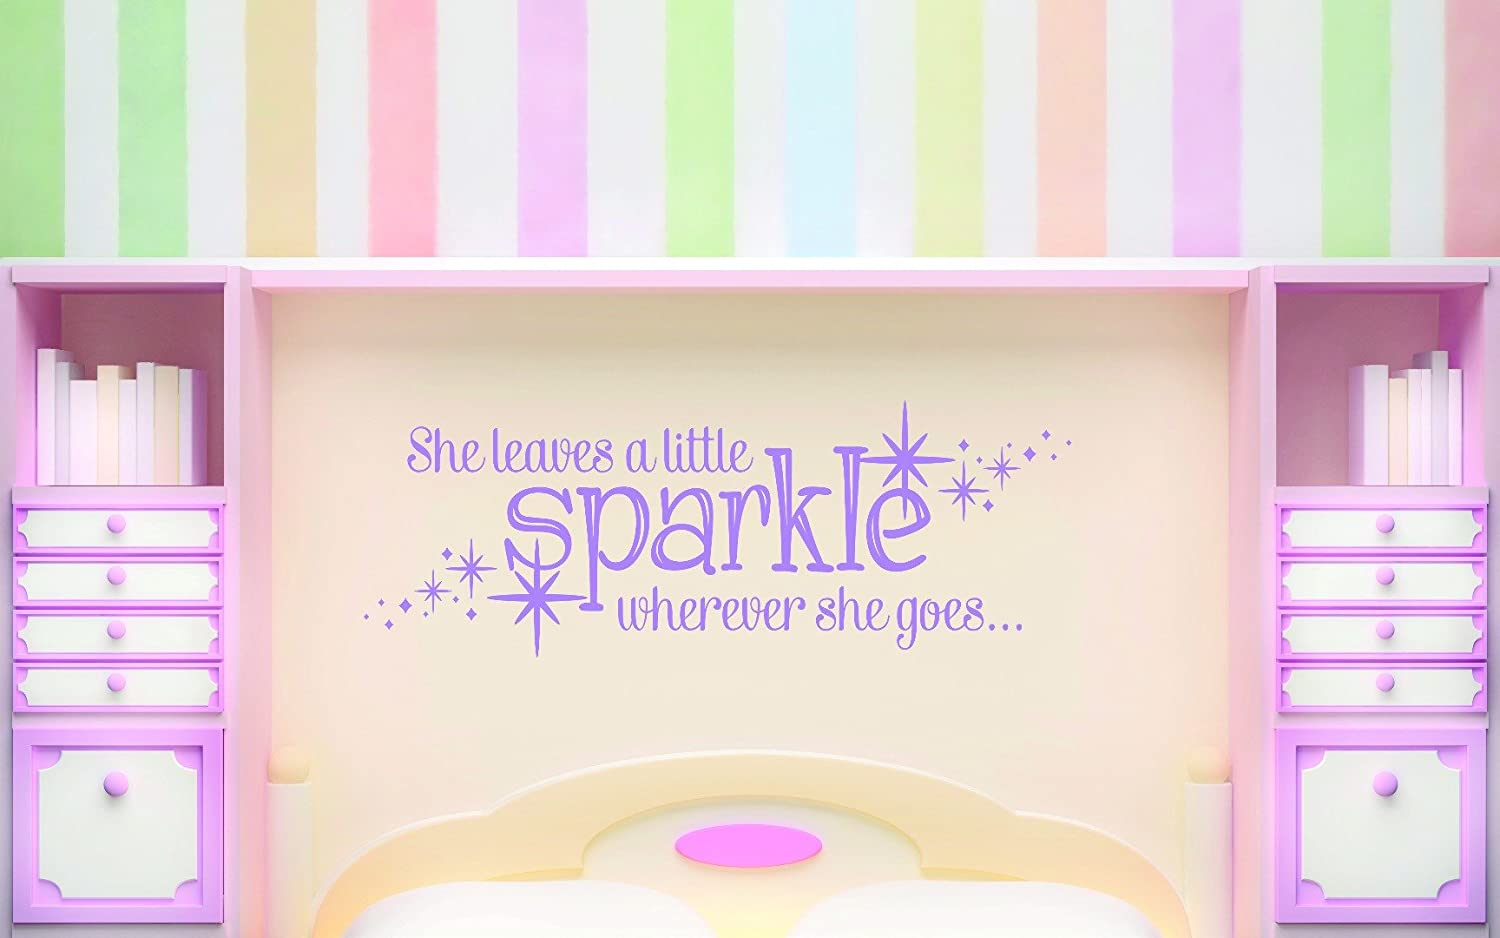 20 x 30 Teen Baby Girl Bedroom Quote Wall Decal Design with Vinyl RAD 733 3 She Leaves A Little Sparkle Wherever She Goes Pink